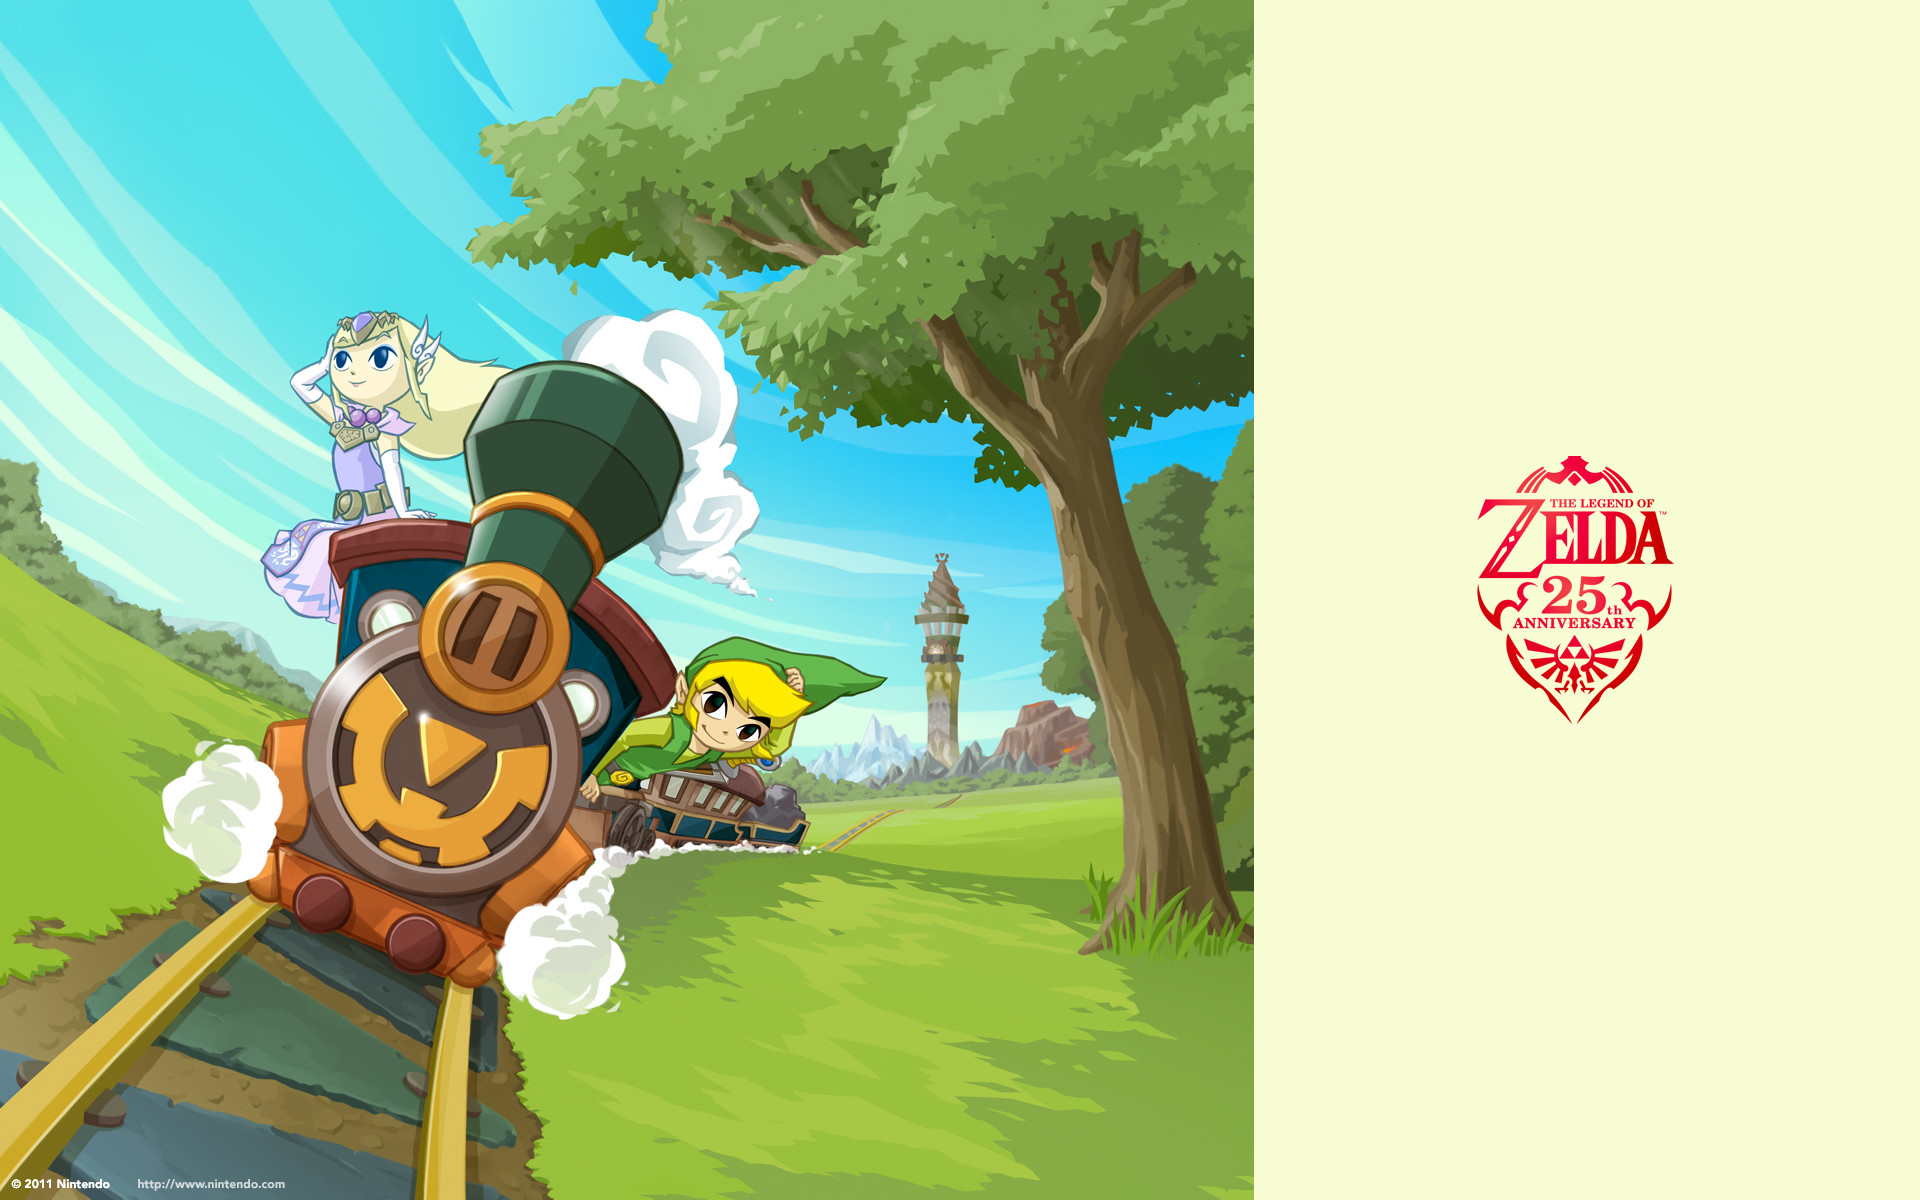 The Legend of Zelda Characters images 25th anniversary wallpapers HD  wallpaper and background photos